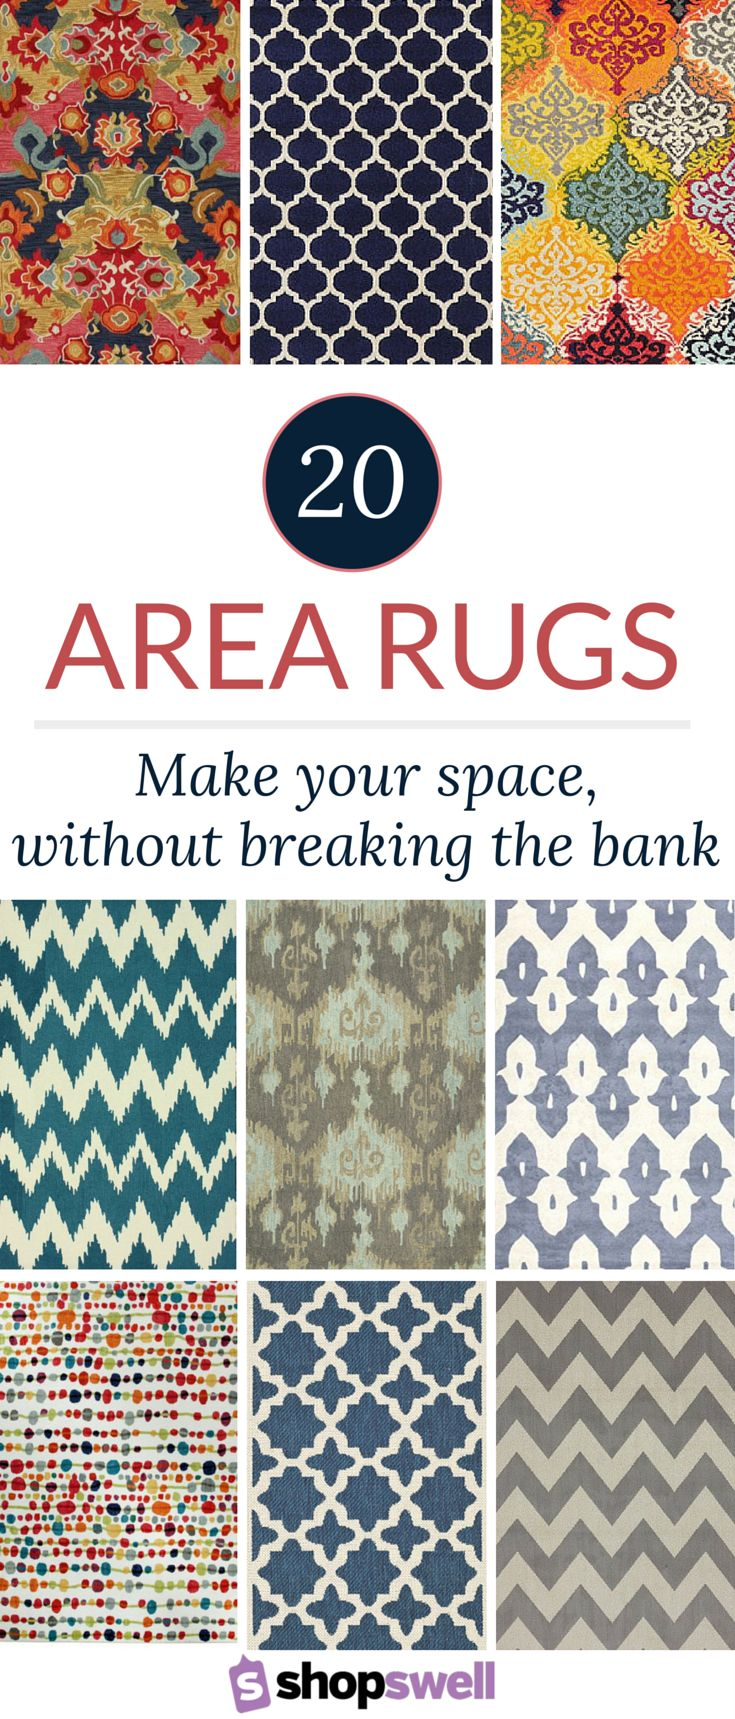 An area rug can make or break your living space. Thankfully, since these gorgeous rugs are priced under $160 they won't break the bank.